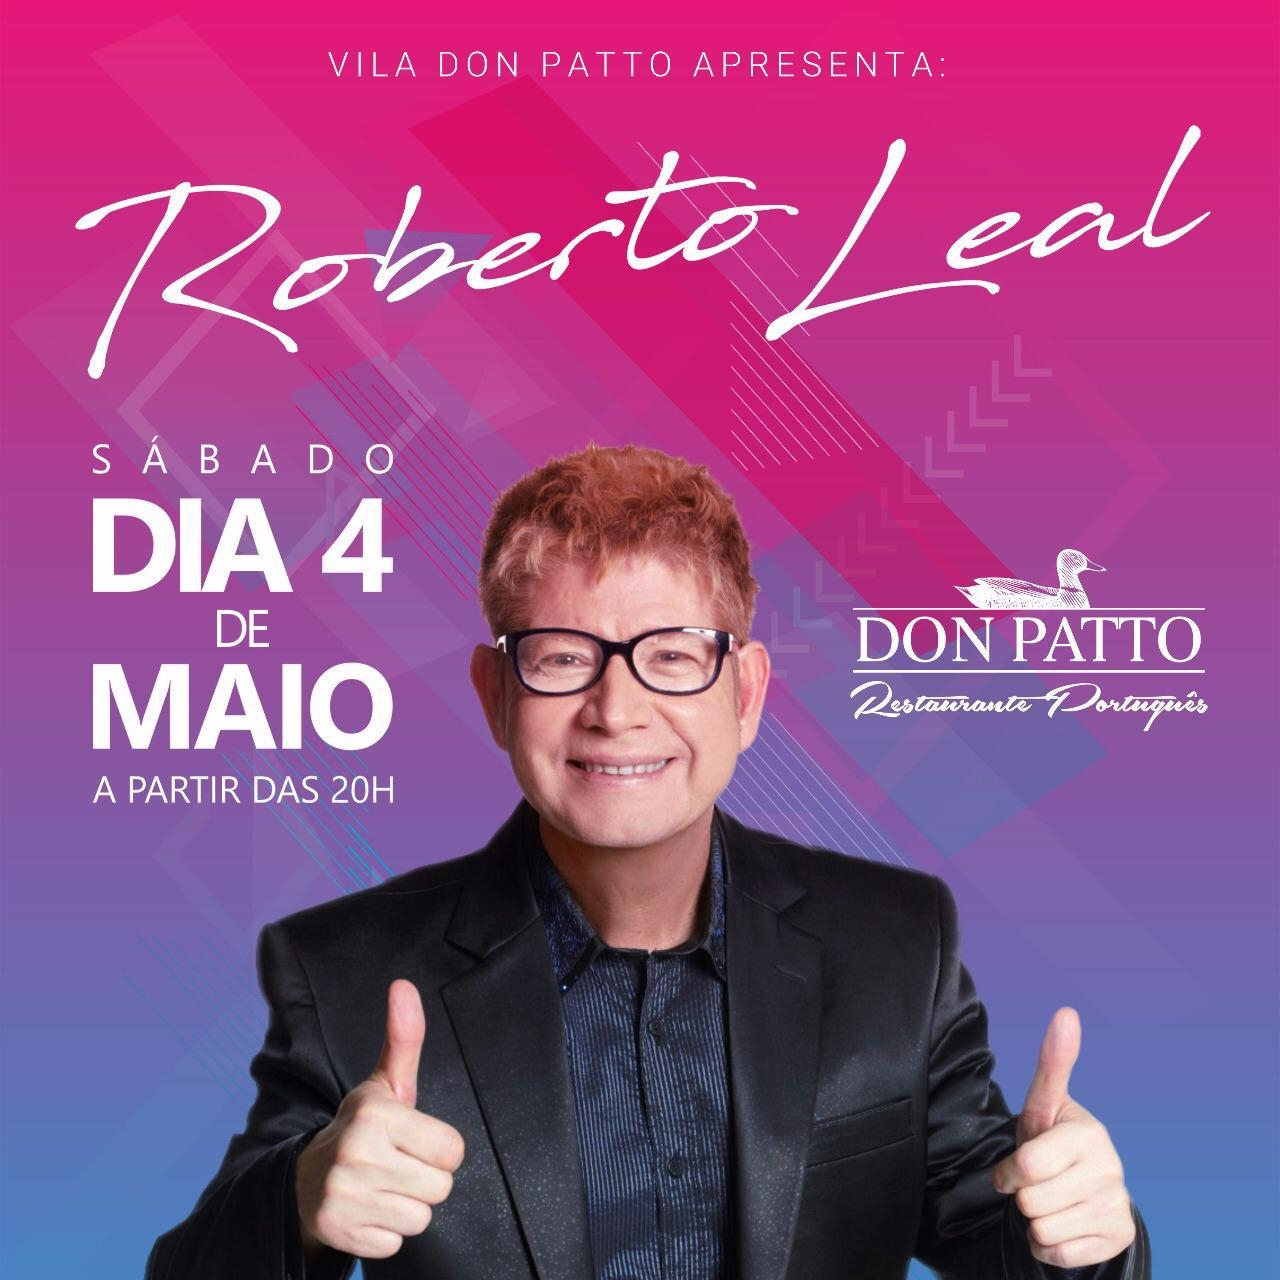 Vila Don Patto recebe show do Roberto Leal